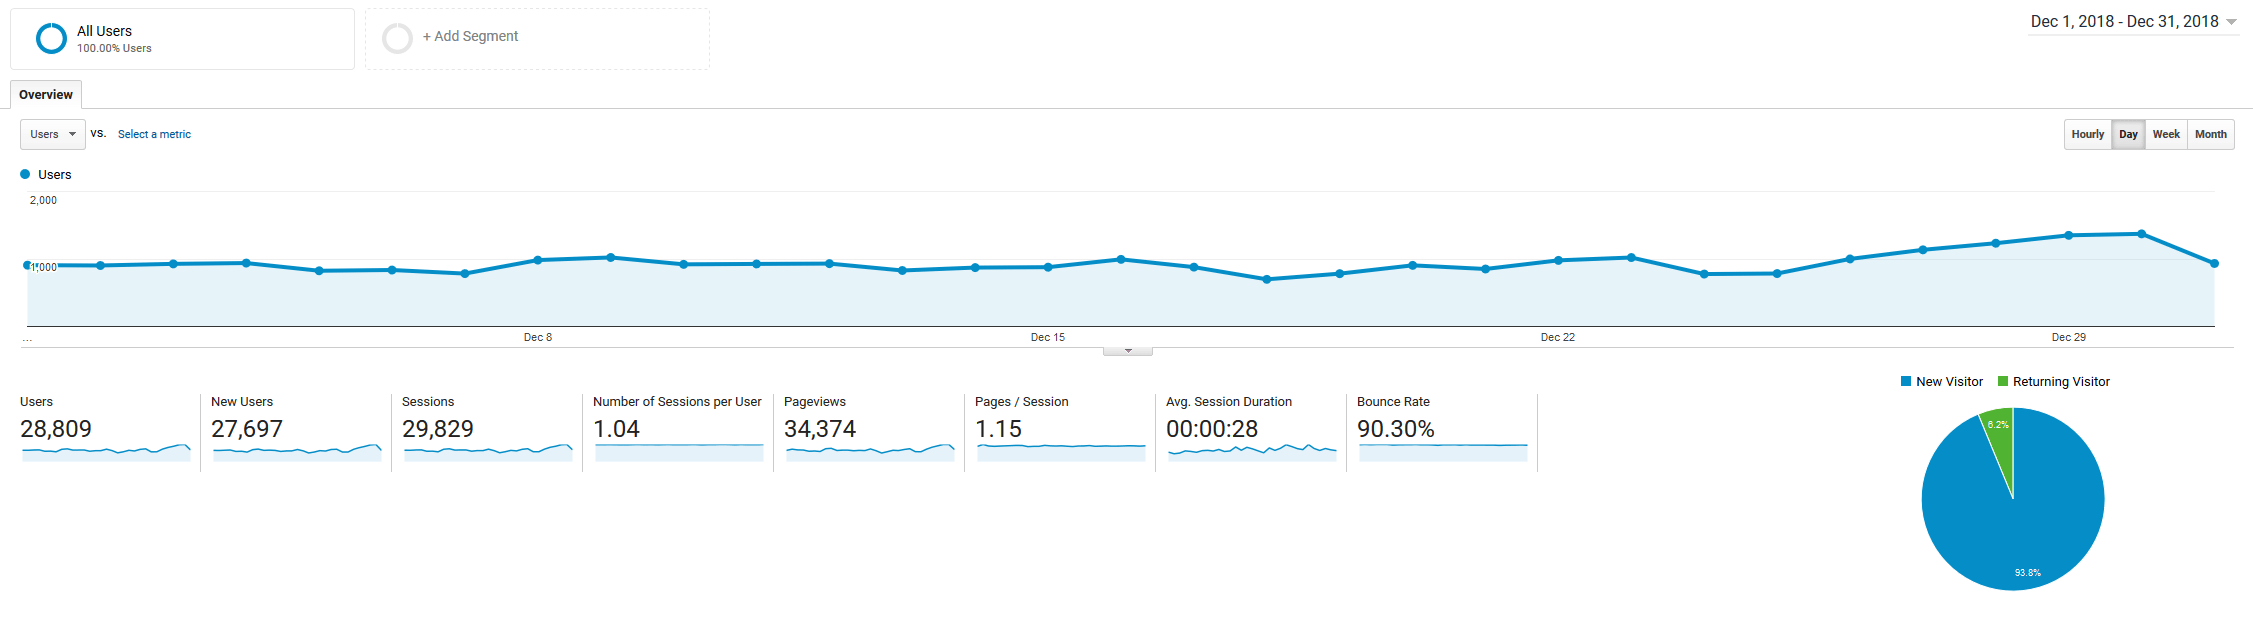 December 2018 Google Analytics roseclearfield.com   http://www.roseclearfield.com